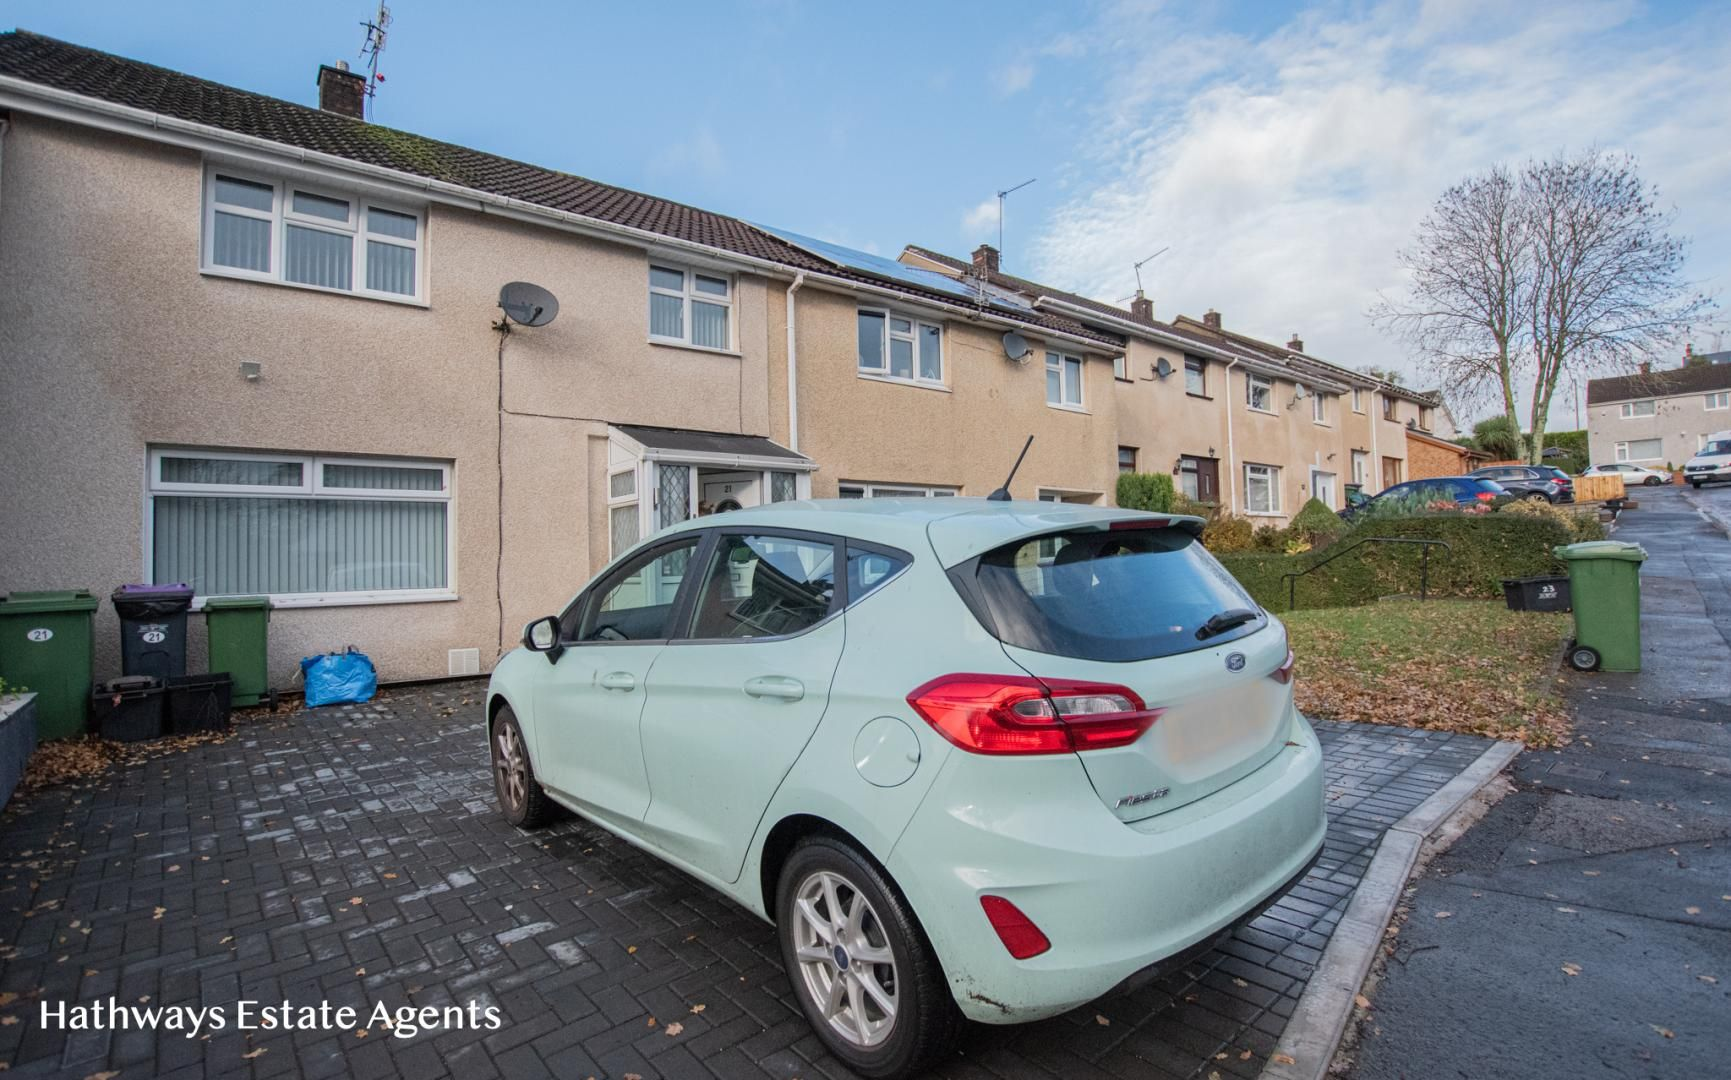 3 bed house to rent in Whitehouse Road, NP44